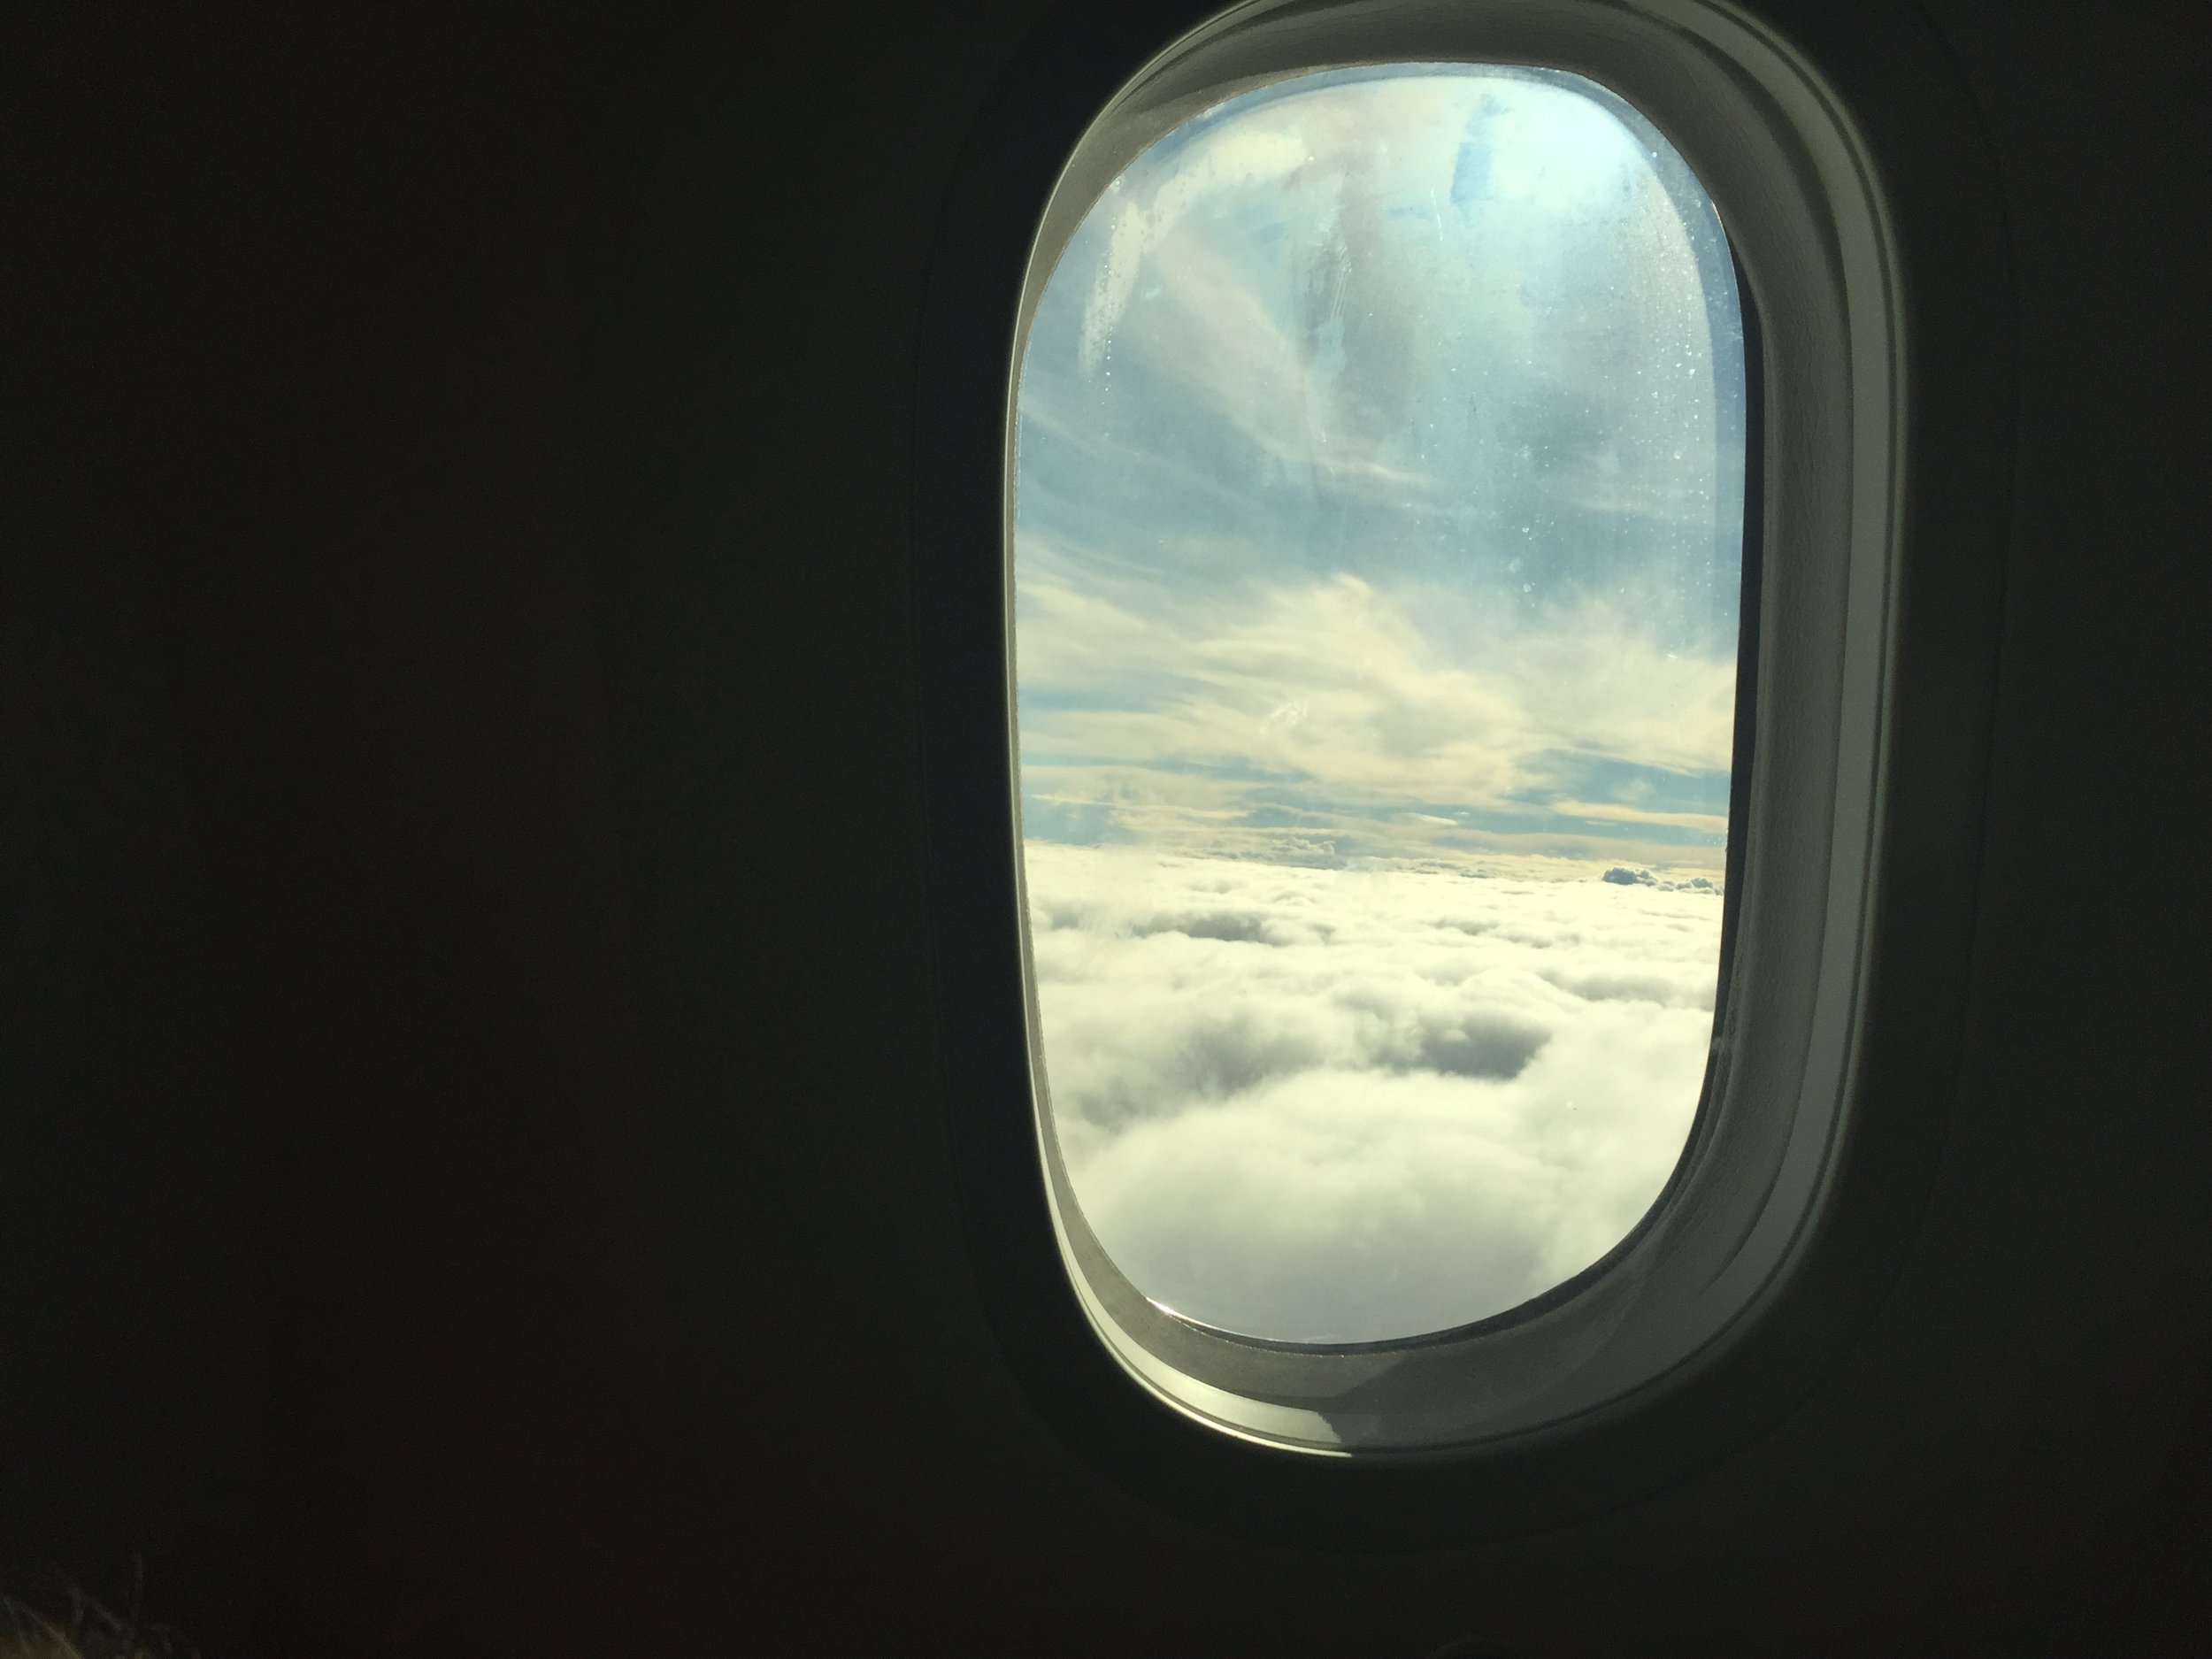 Sometimes being up in the clouds is just where you belong.